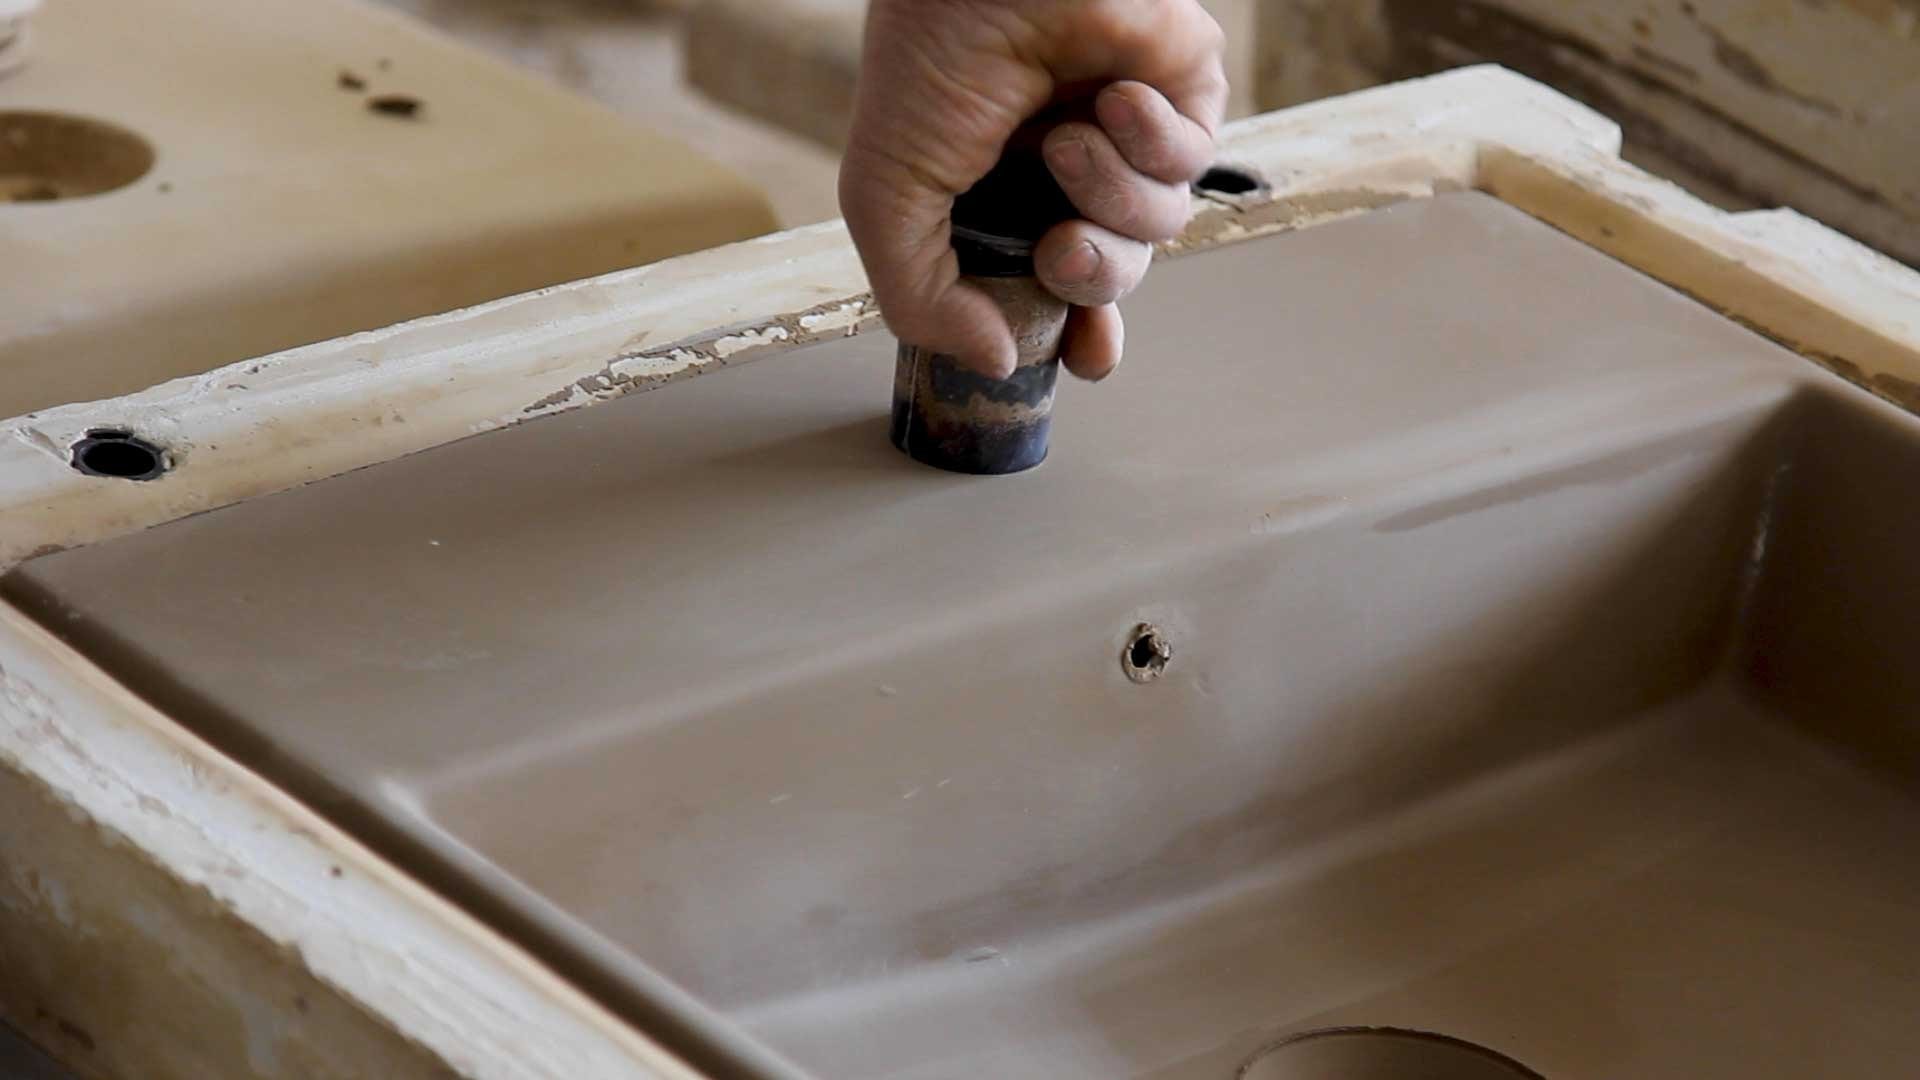 Moulding the basin